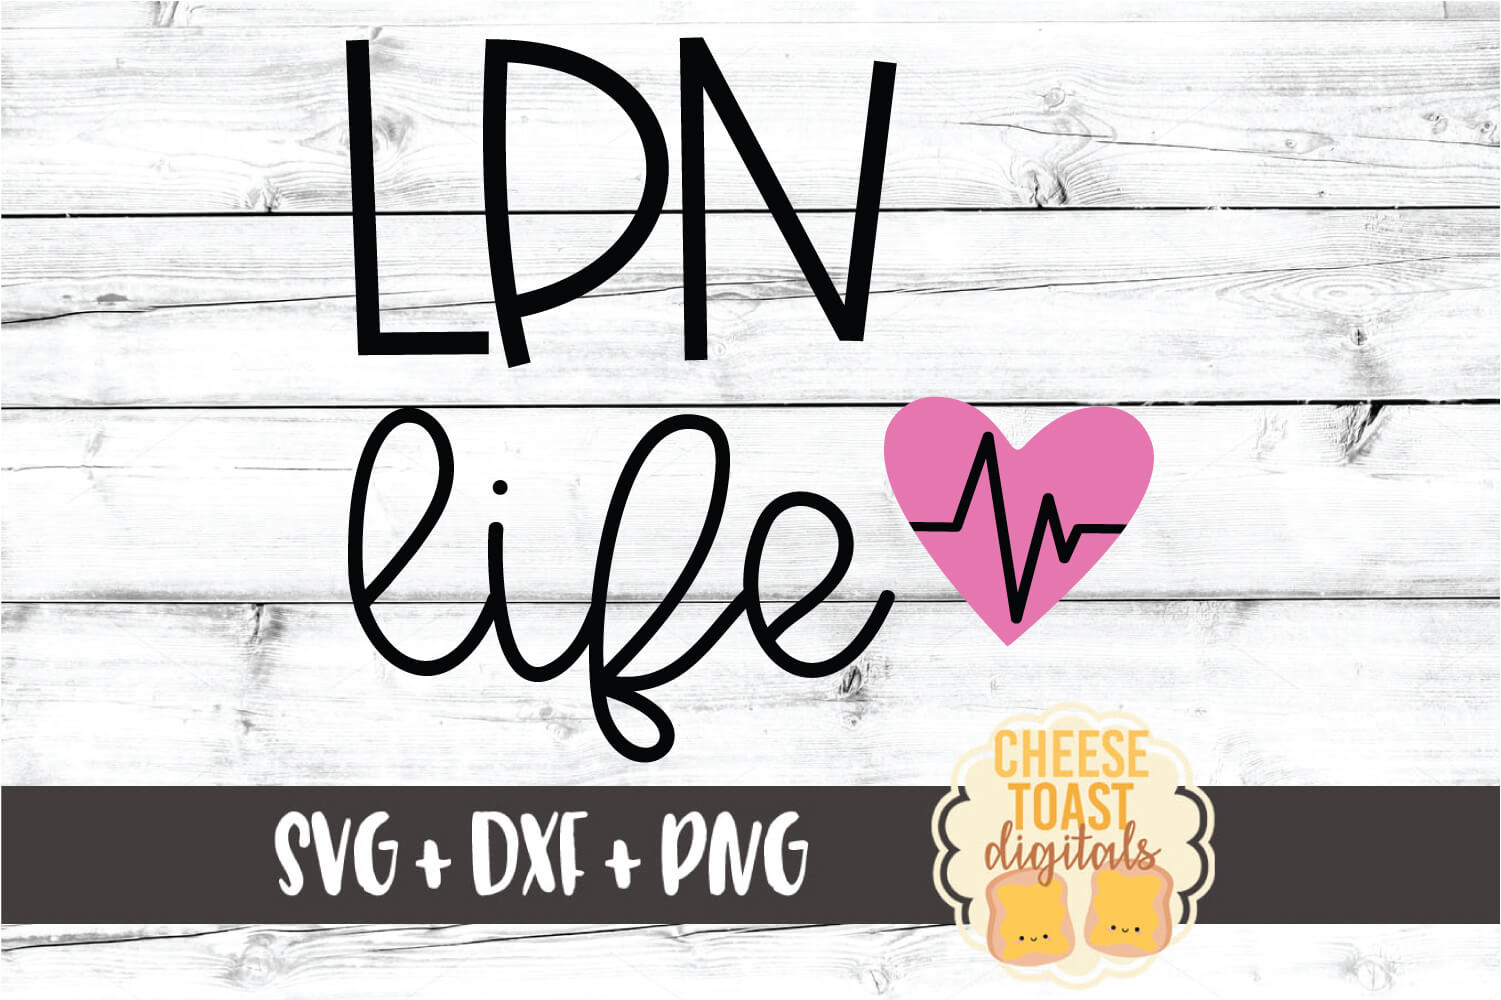 LPN Life - Licensed Practical Nurse SVG PNG DXF Cut Files example image 2